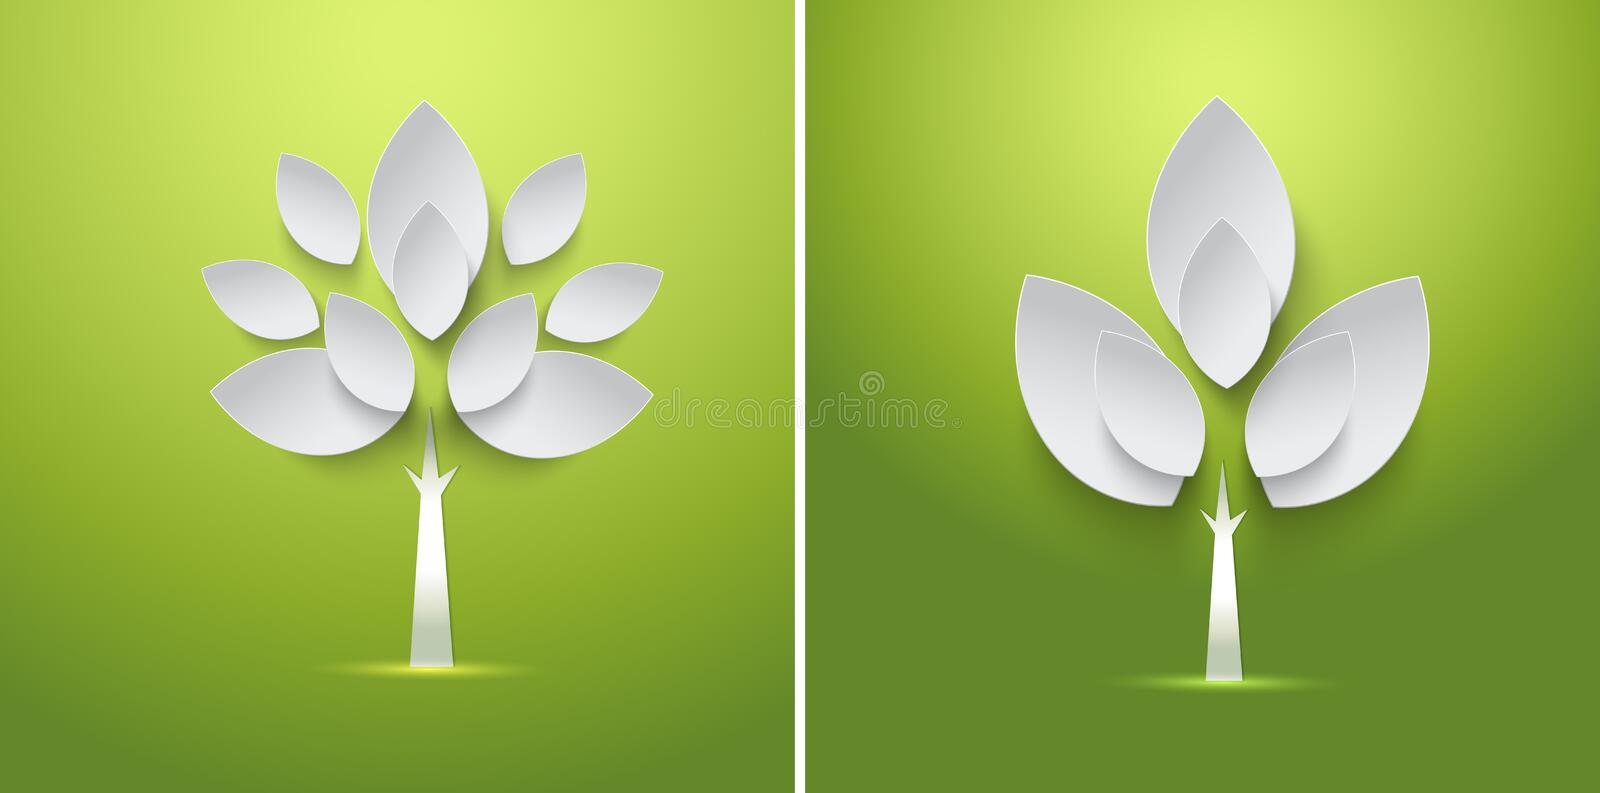 Abstract paper spring tree with leaves card royalty free illustration